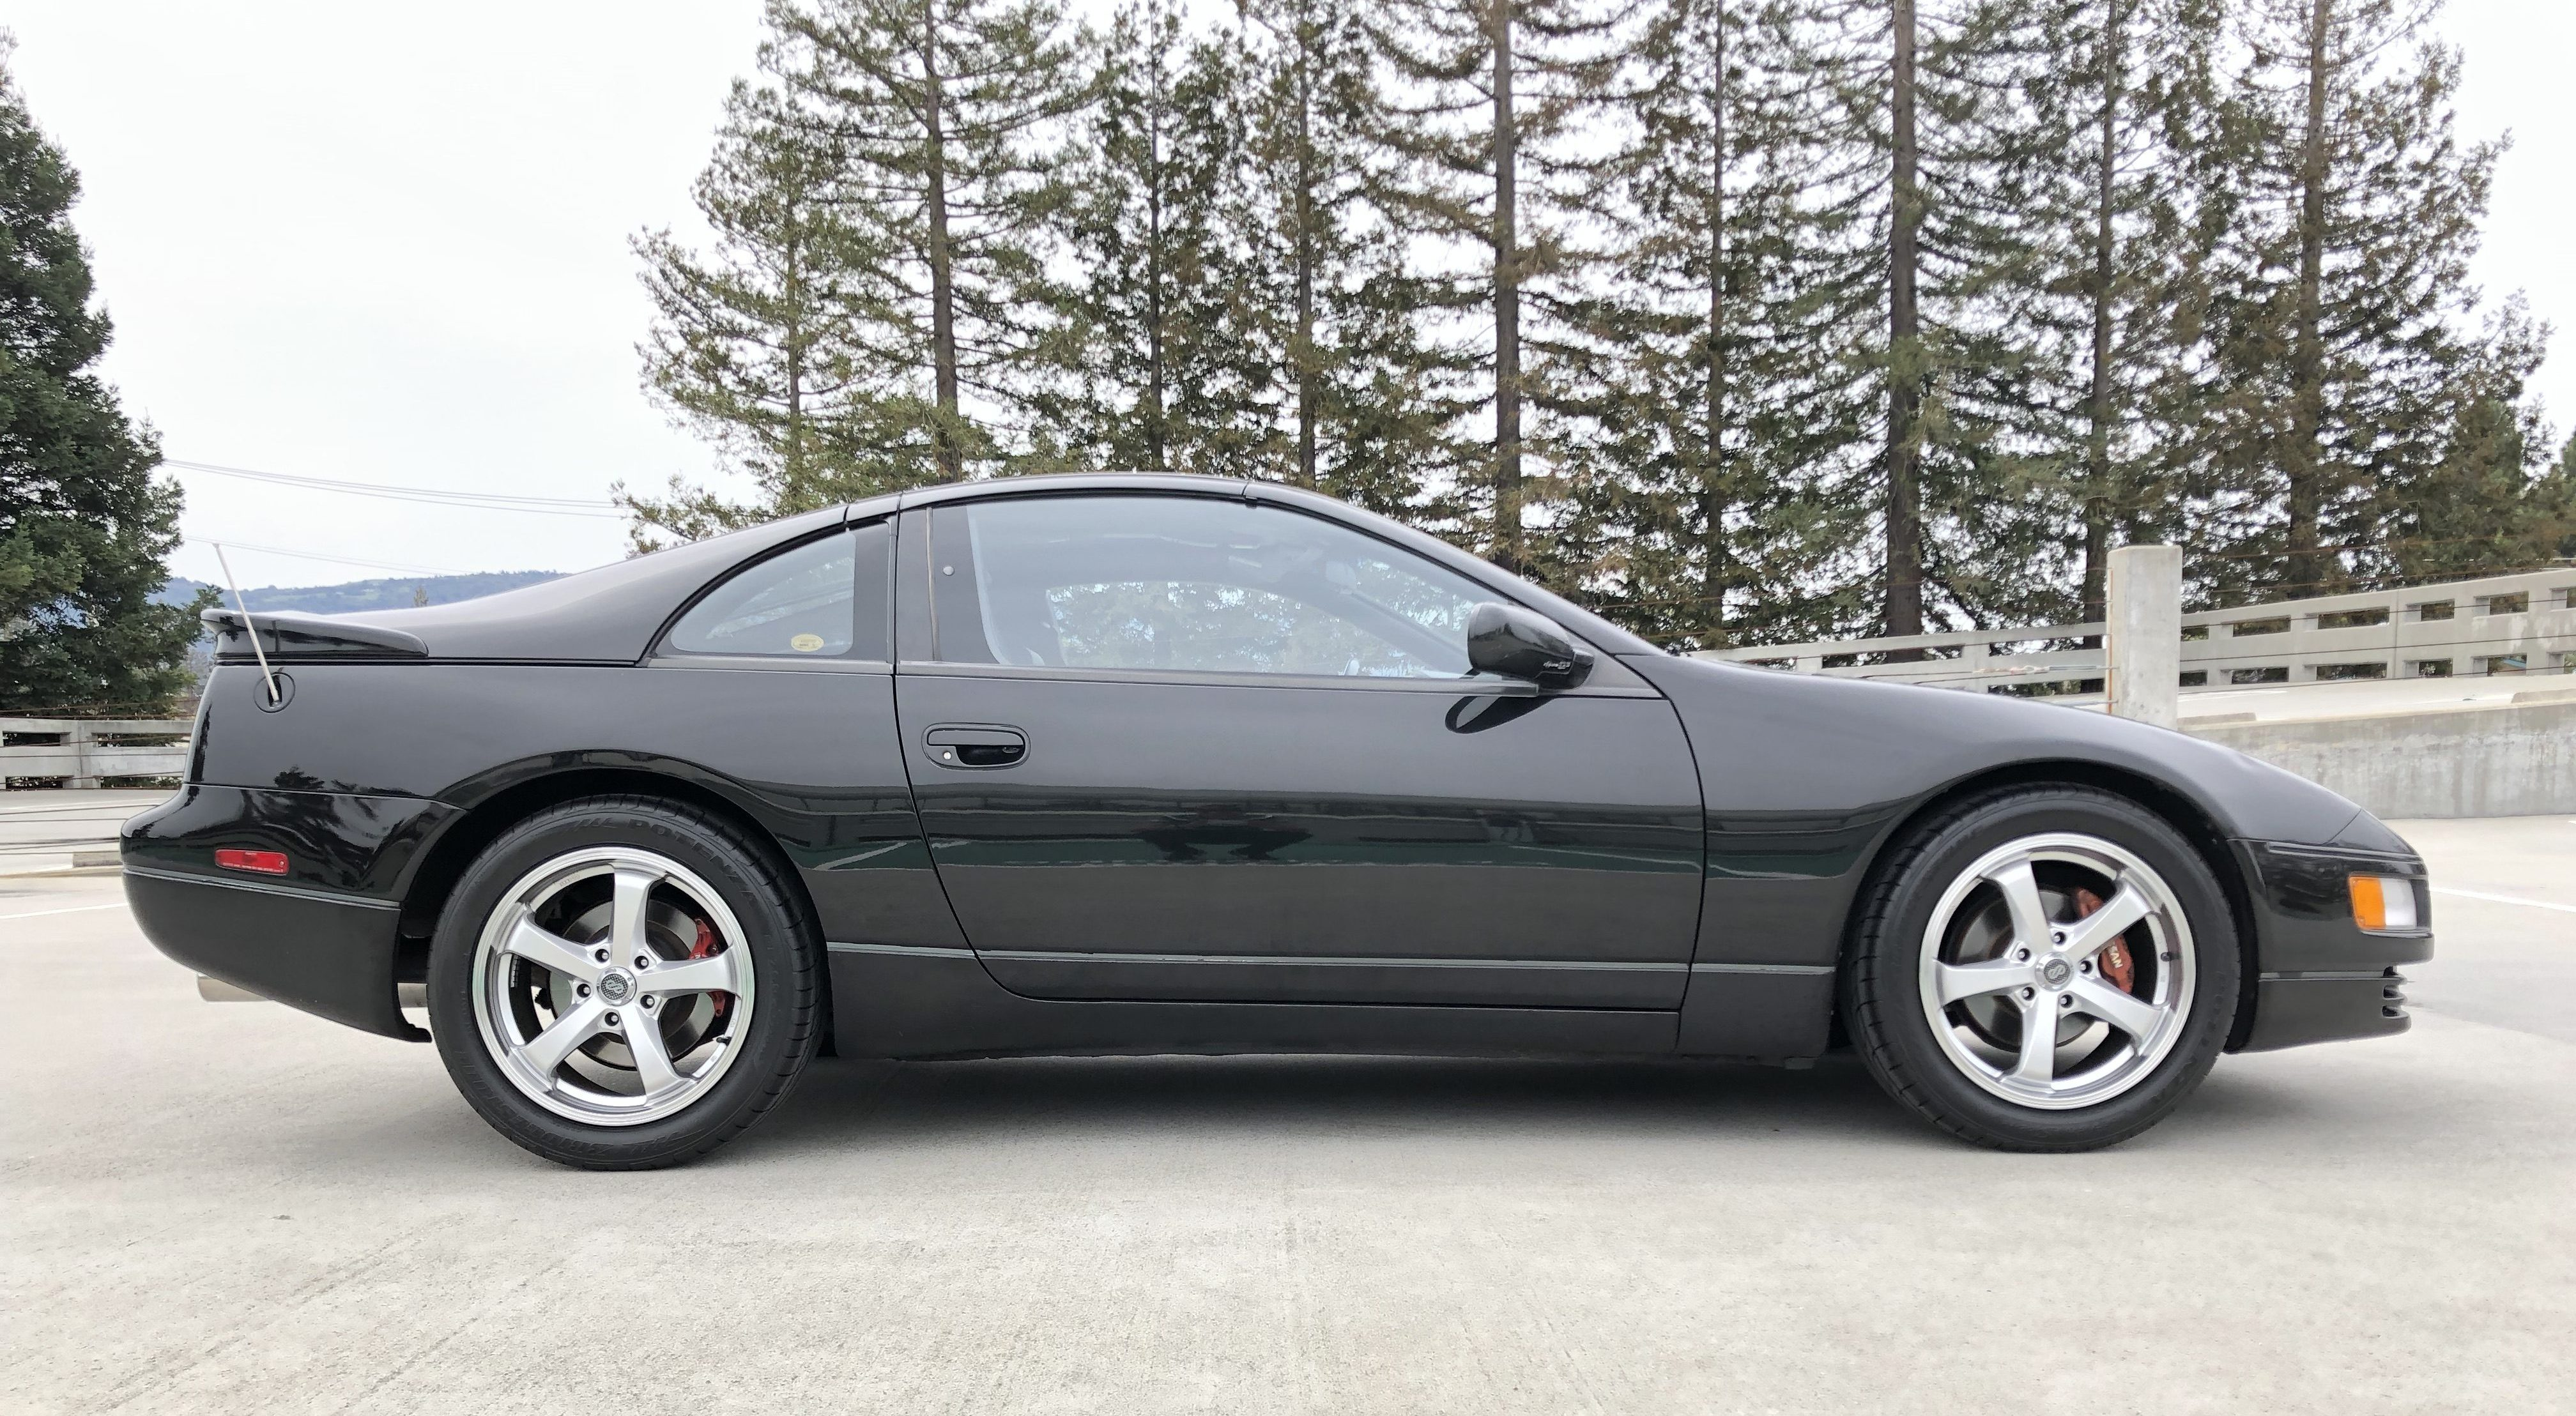 Z-Car Blog » Post Topic » FOR SALE: 1991 Nissan 300zx Twin Turbo